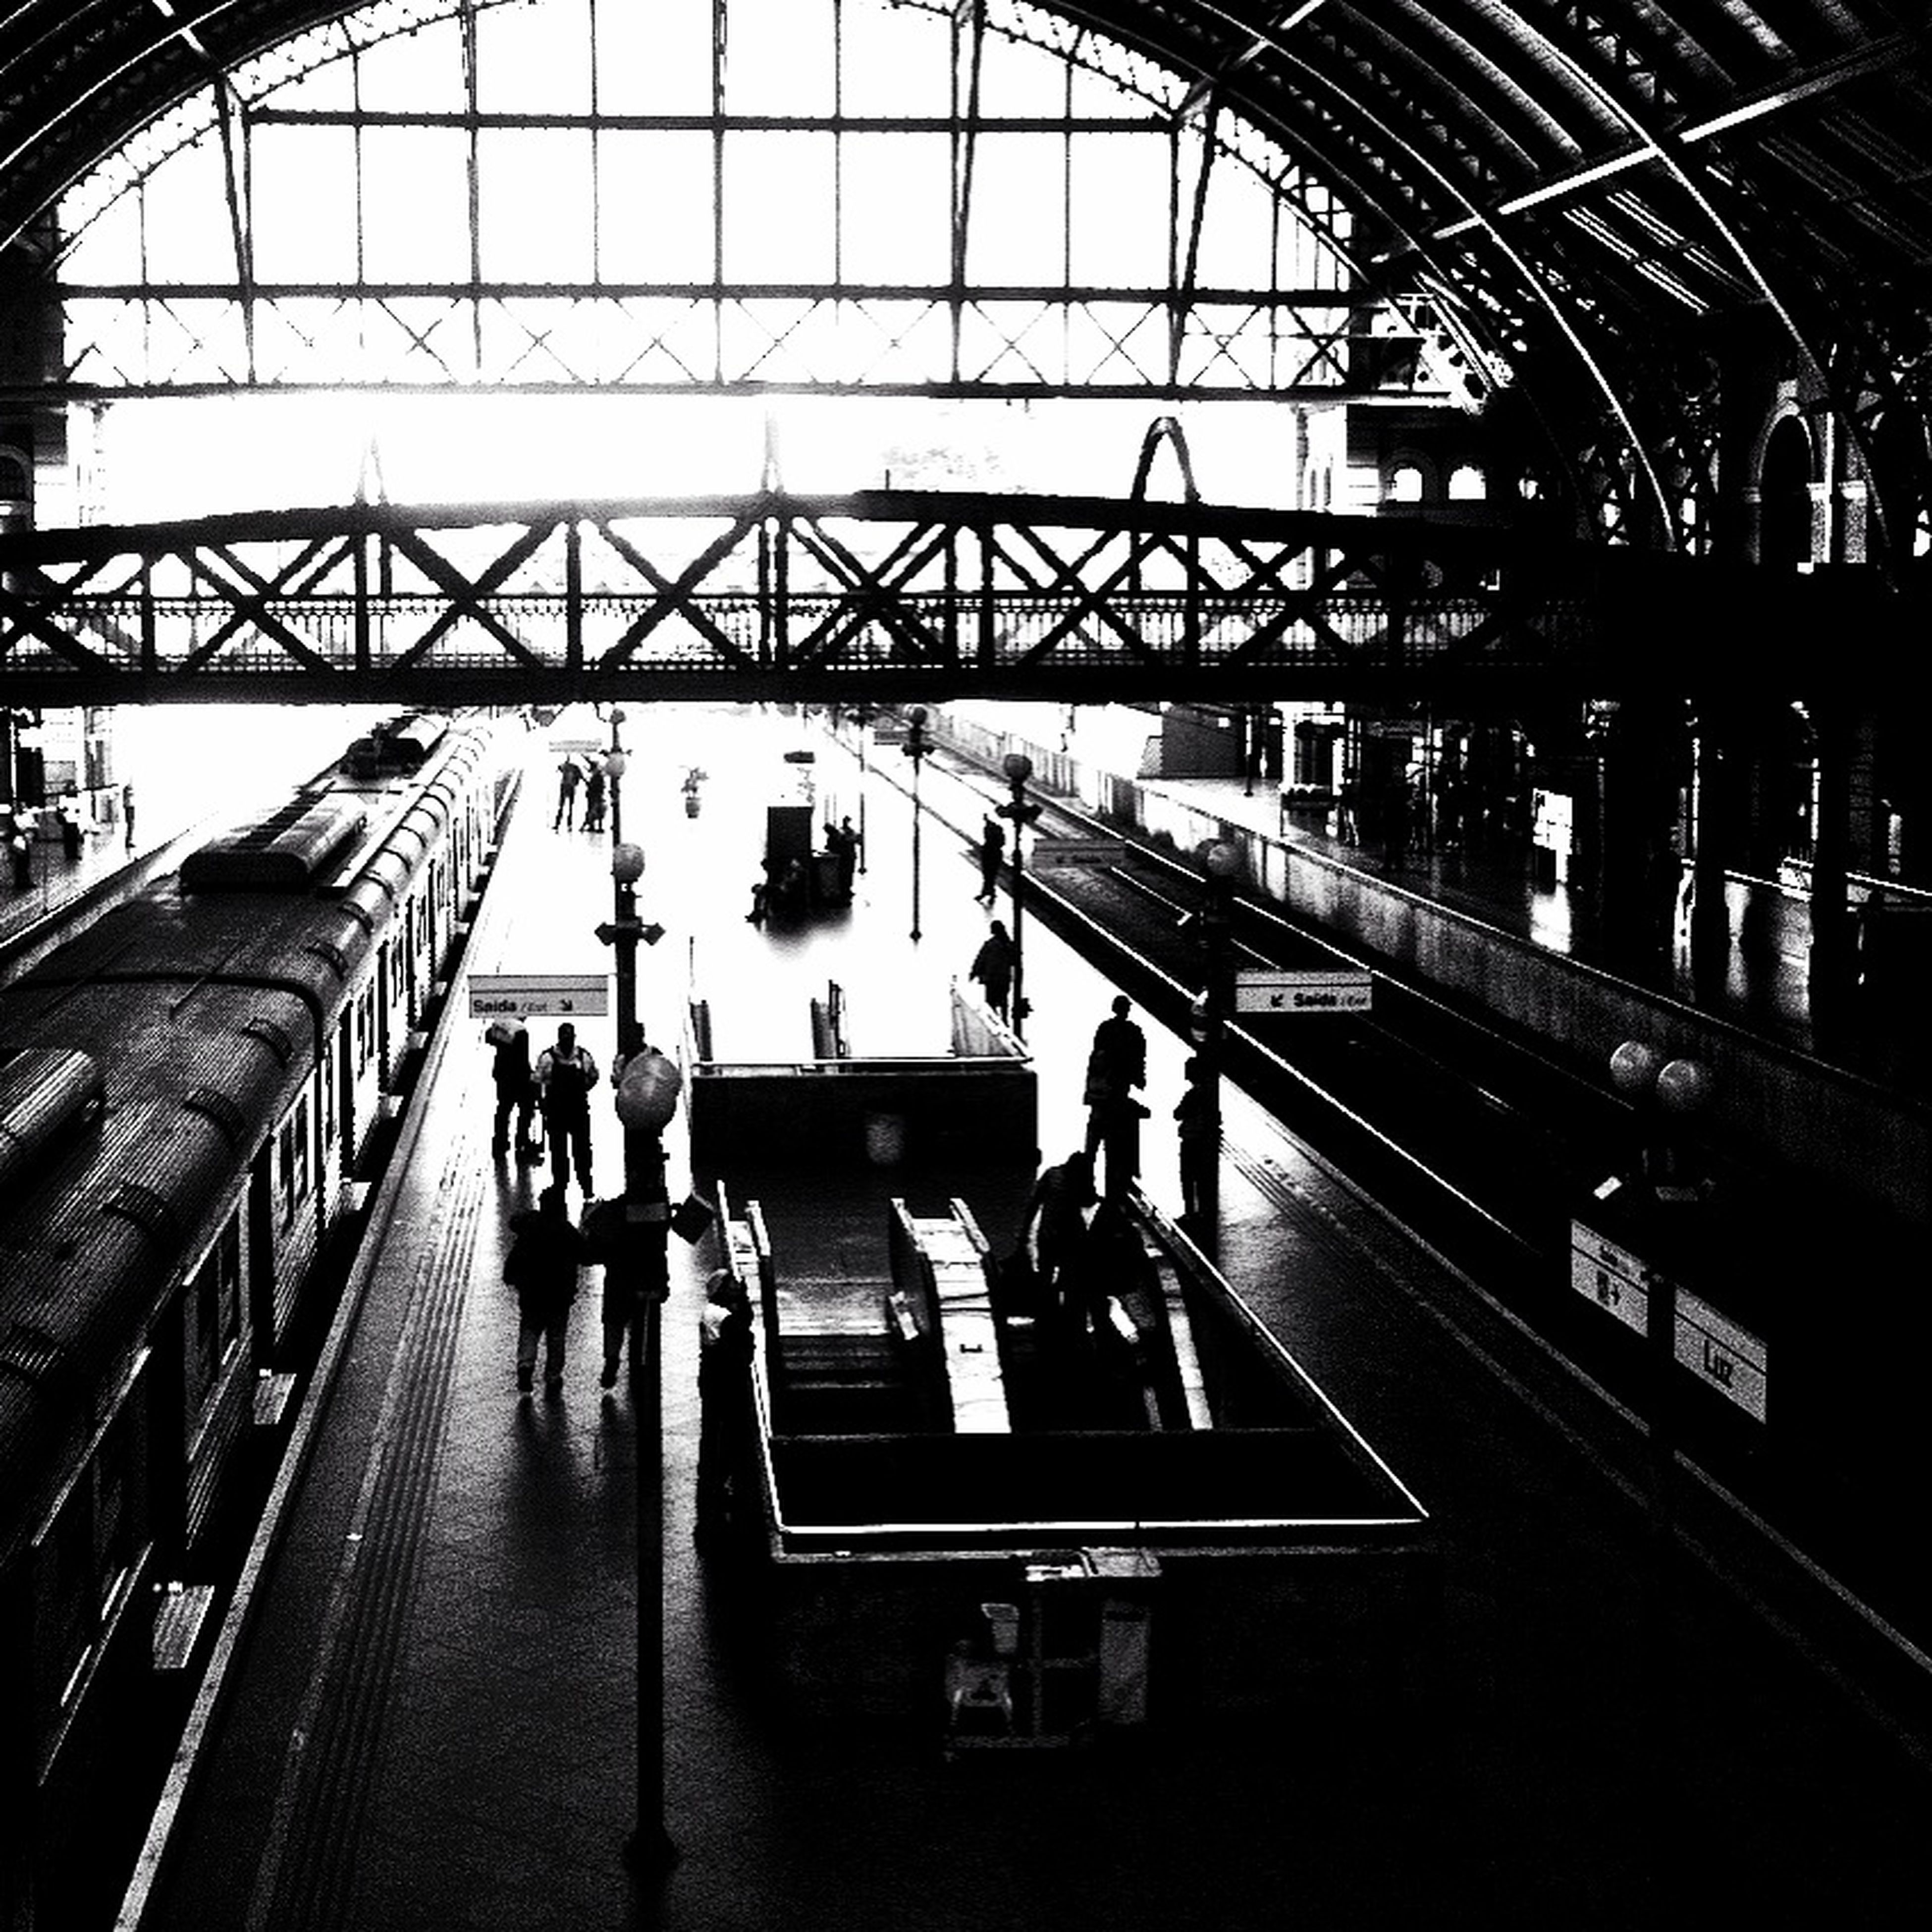 indoors, railroad station, transportation, public transportation, rail transportation, railroad station platform, large group of people, railroad track, travel, men, passenger, architecture, person, subway station, built structure, train - vehicle, transportation building - type of building, ceiling, station